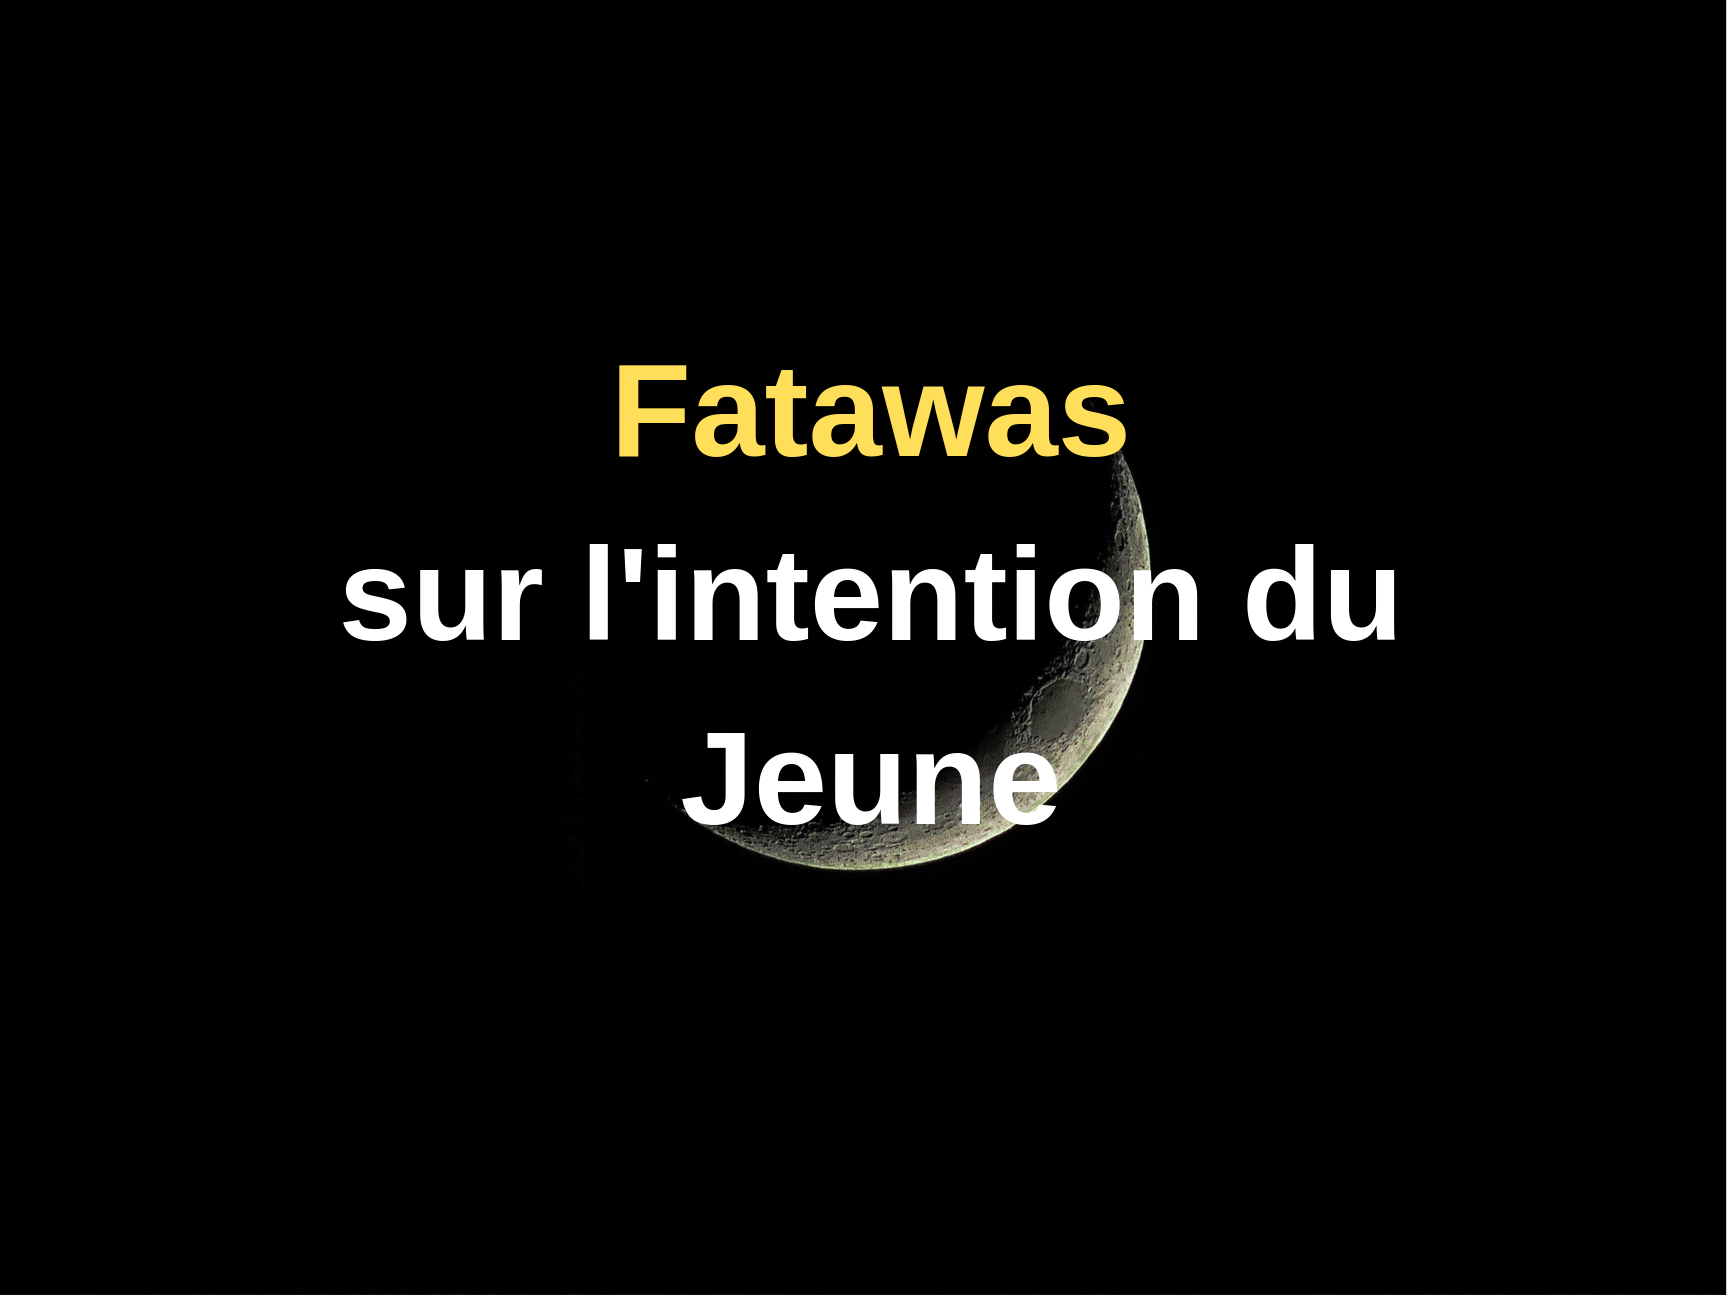 Fatawas sur l'intention du Jeune